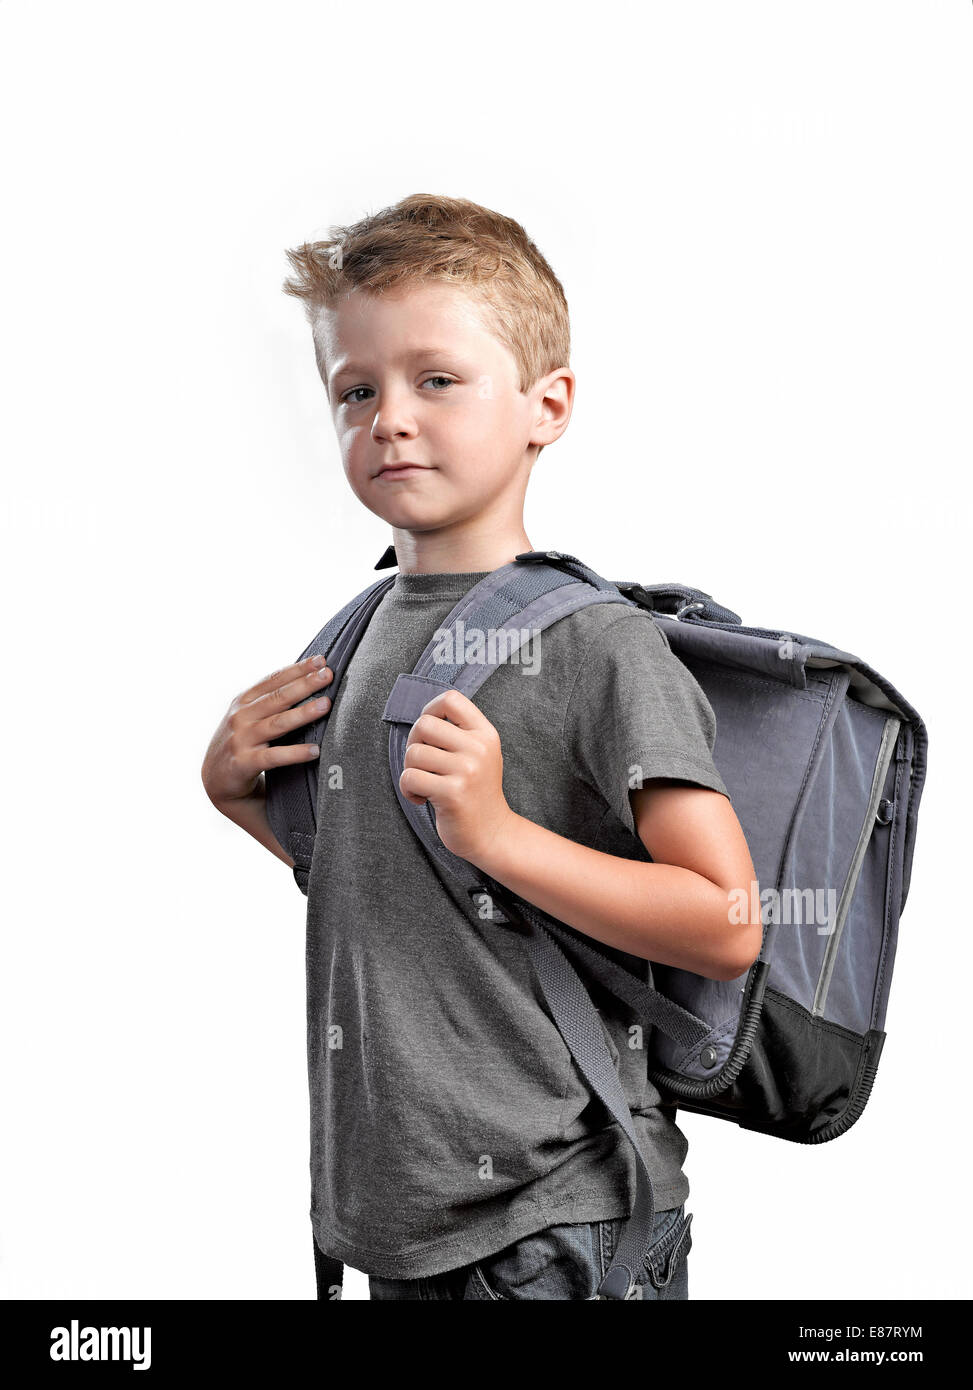 0db3d9fe0529 Young boy with backpack isolated on white background ready to go ...